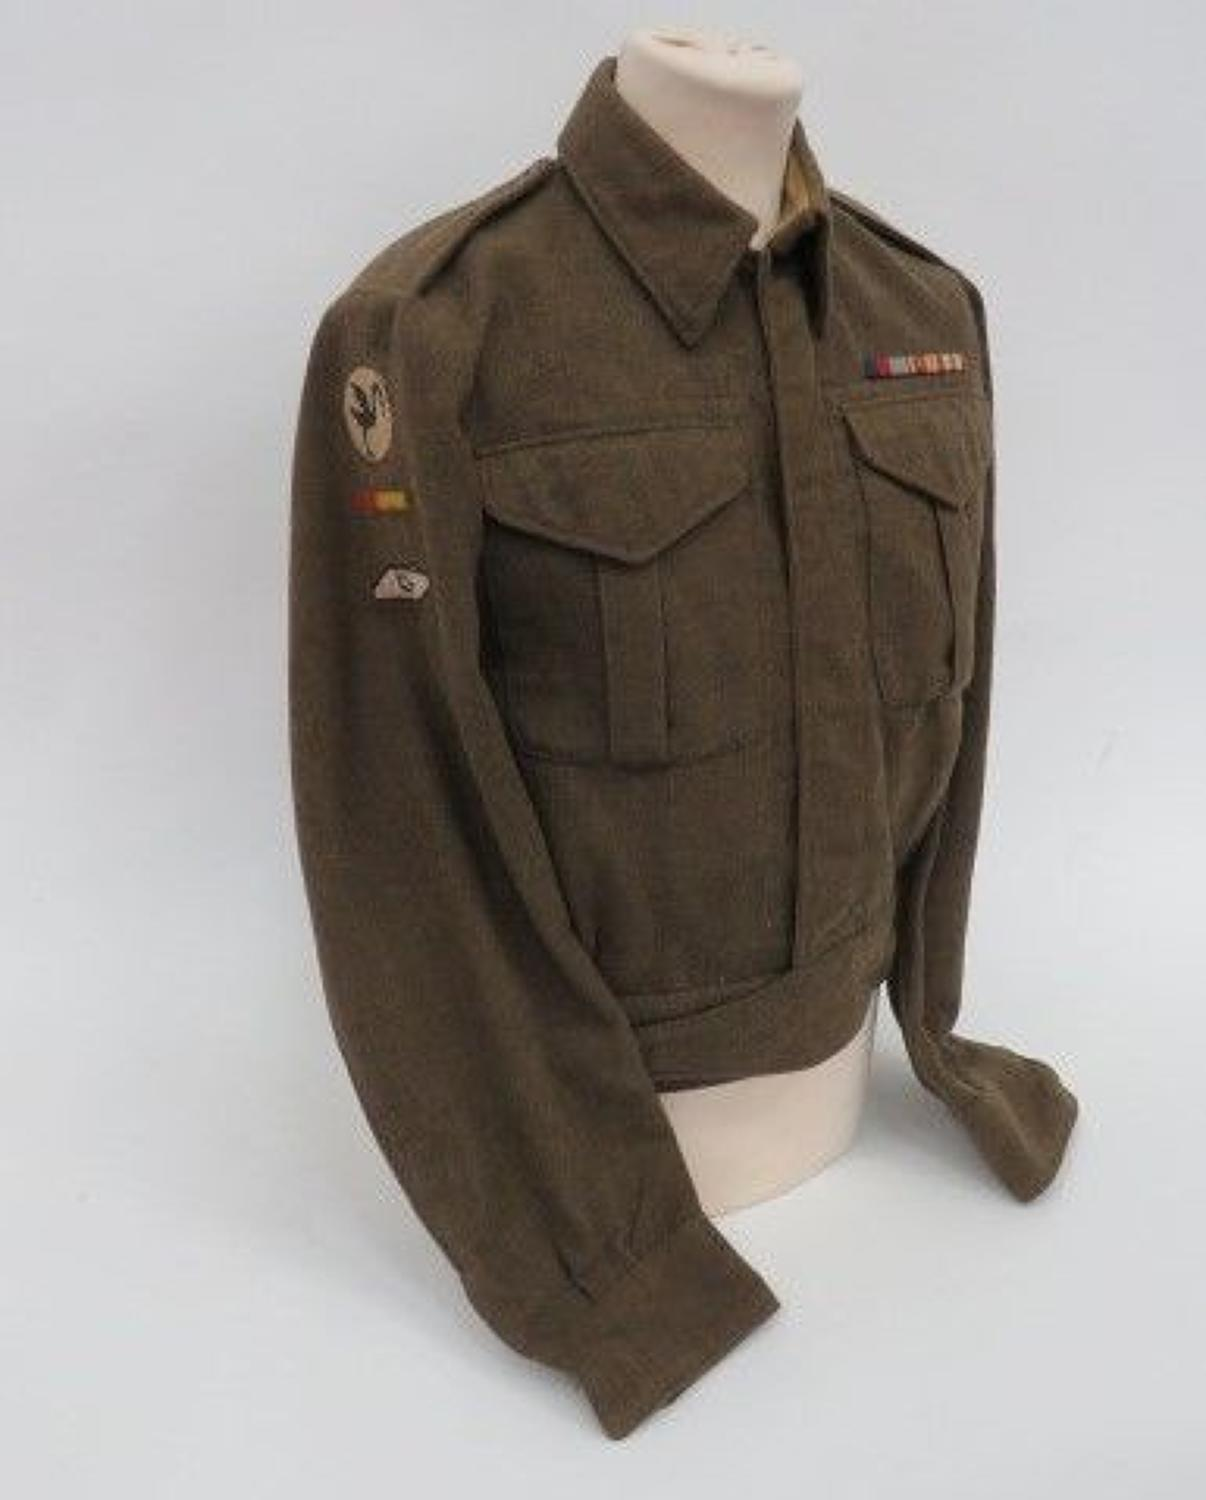 23rd Armoured Brigade Tank Crew Battle Dress Jacket